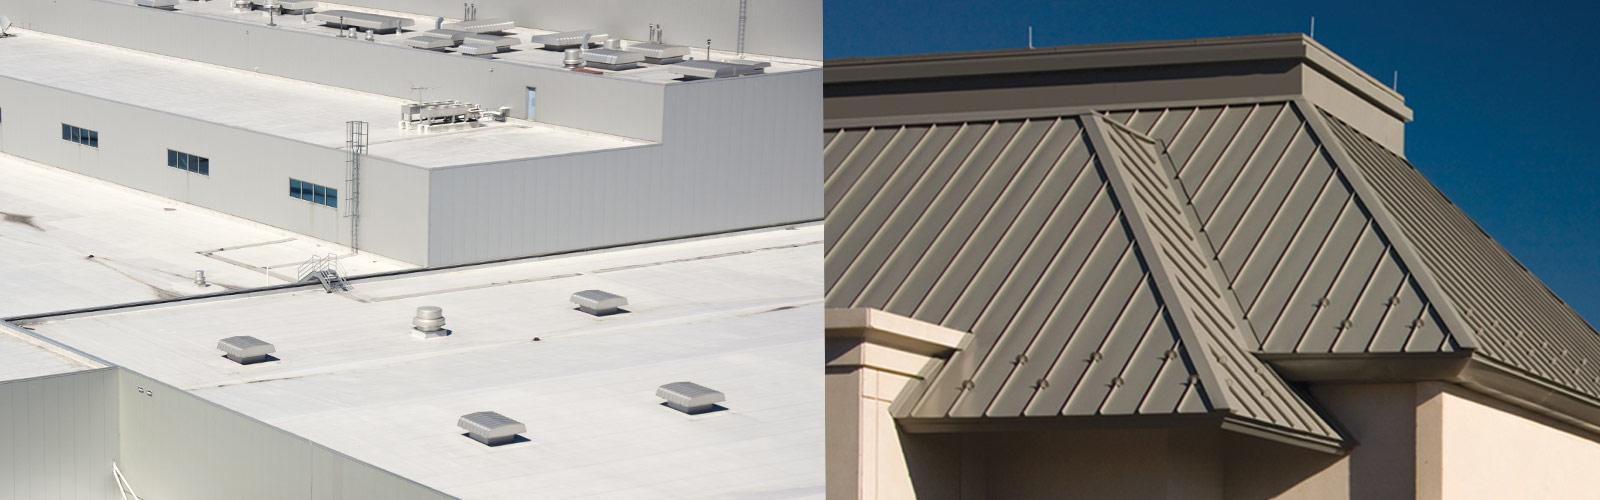 Lone Star Roofing And Siding